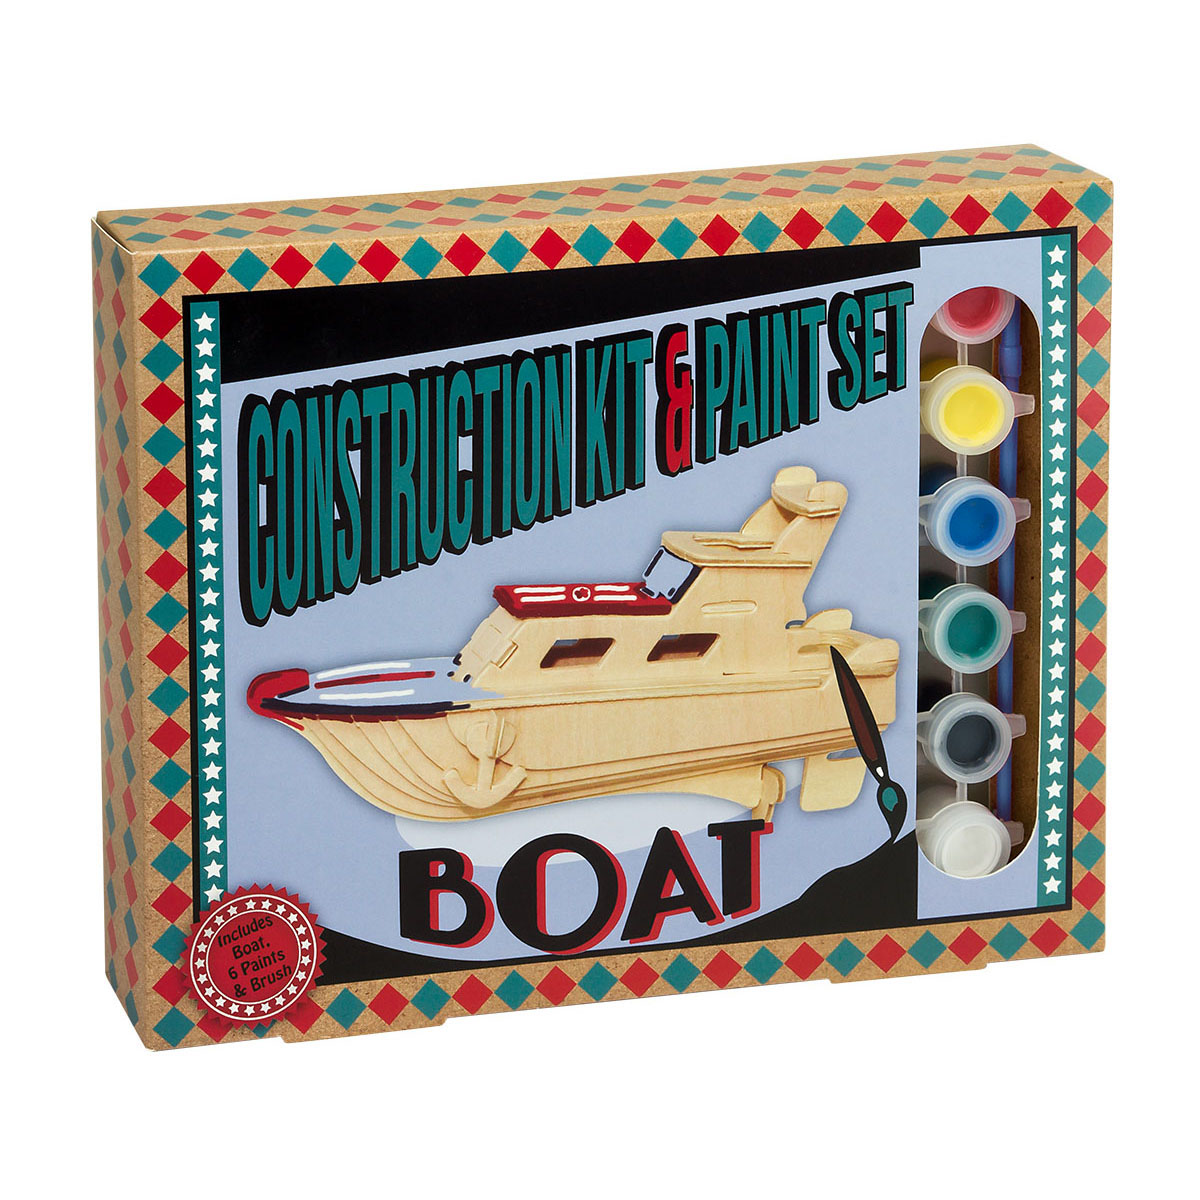 Construction Kit and Paint Sets - Boat